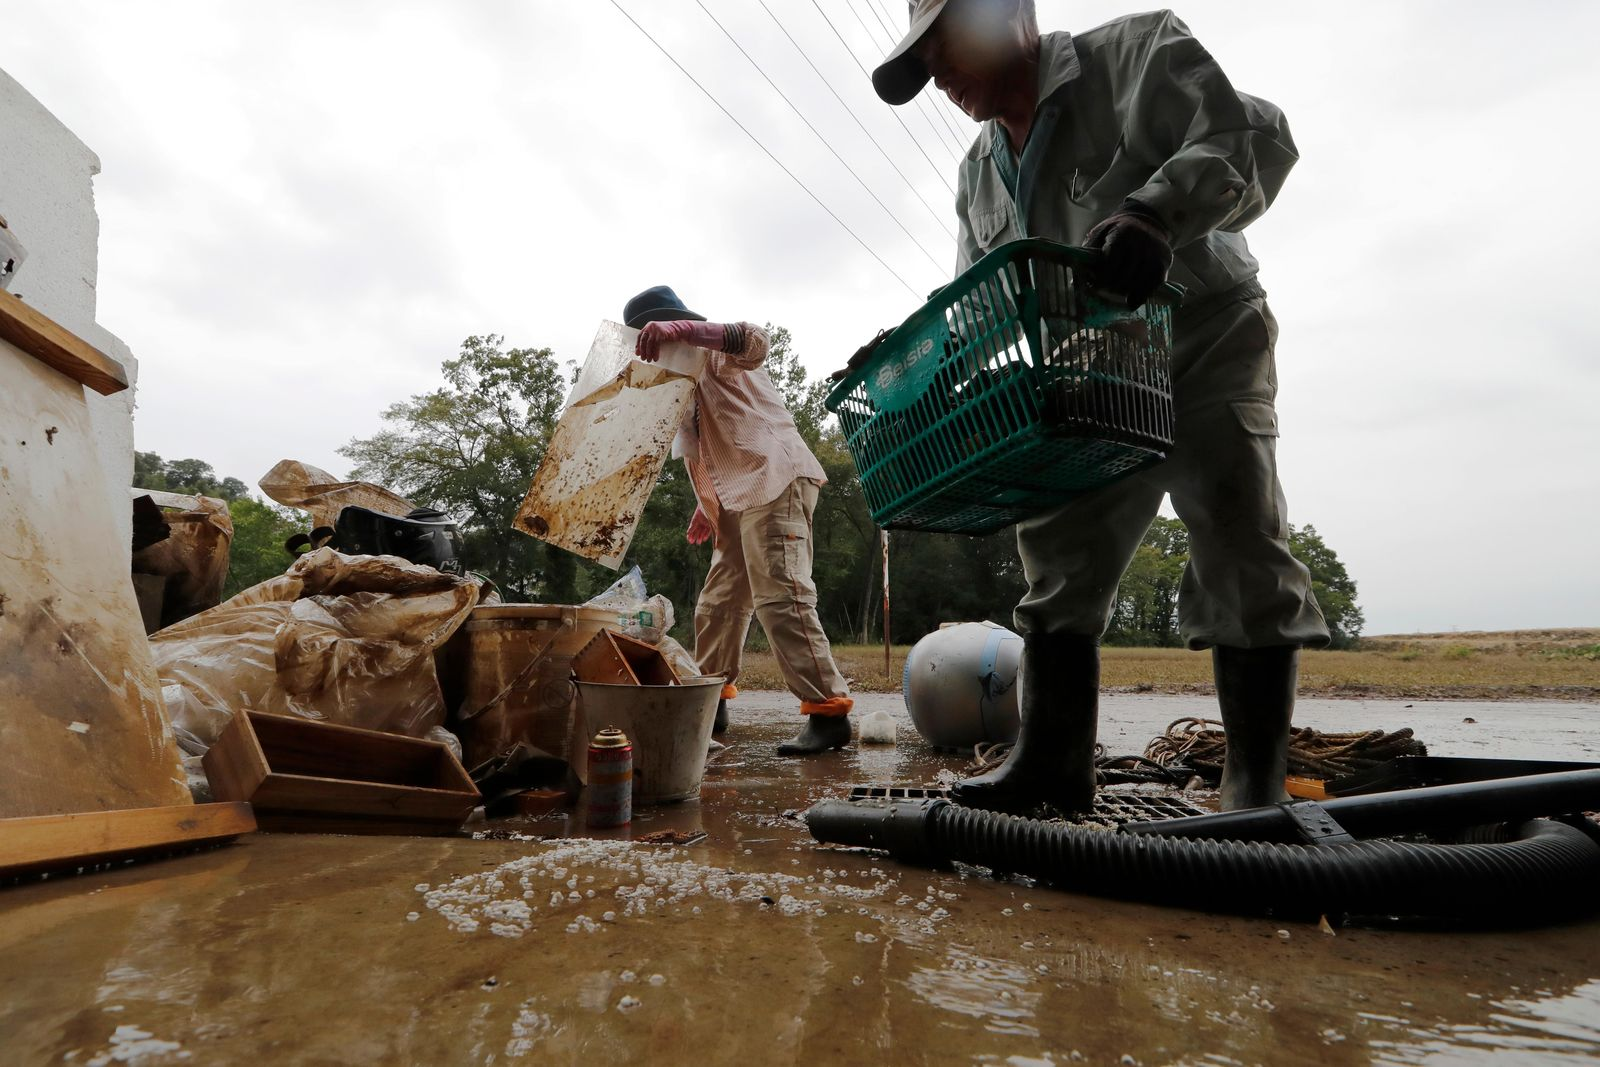 Residents Kazuo Saito, right, and Sumiko Saito clean up their home Monday, Oct. 14, 2019, in Kawagoe City, Japan. Typhoon Hagibis dropped record amounts of rain for a period in some spots, according to meteorological officials, causing more than 20 rivers to overflow. (AP Photo/Eugene Hoshiko)